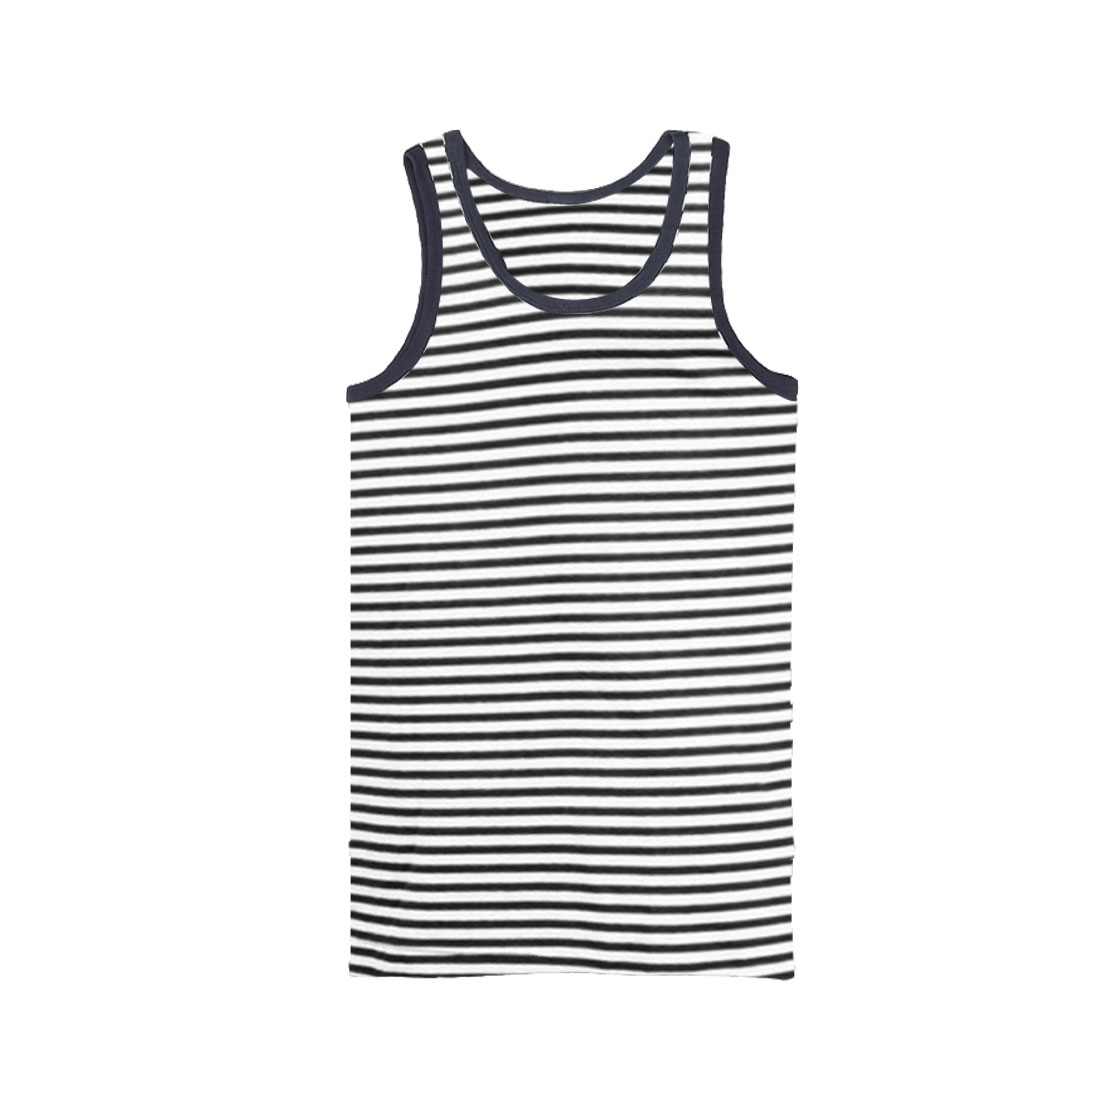 Men U Neck Pullover Sleeveless Stripes Leisure Summer Wearing Shirt White Black S